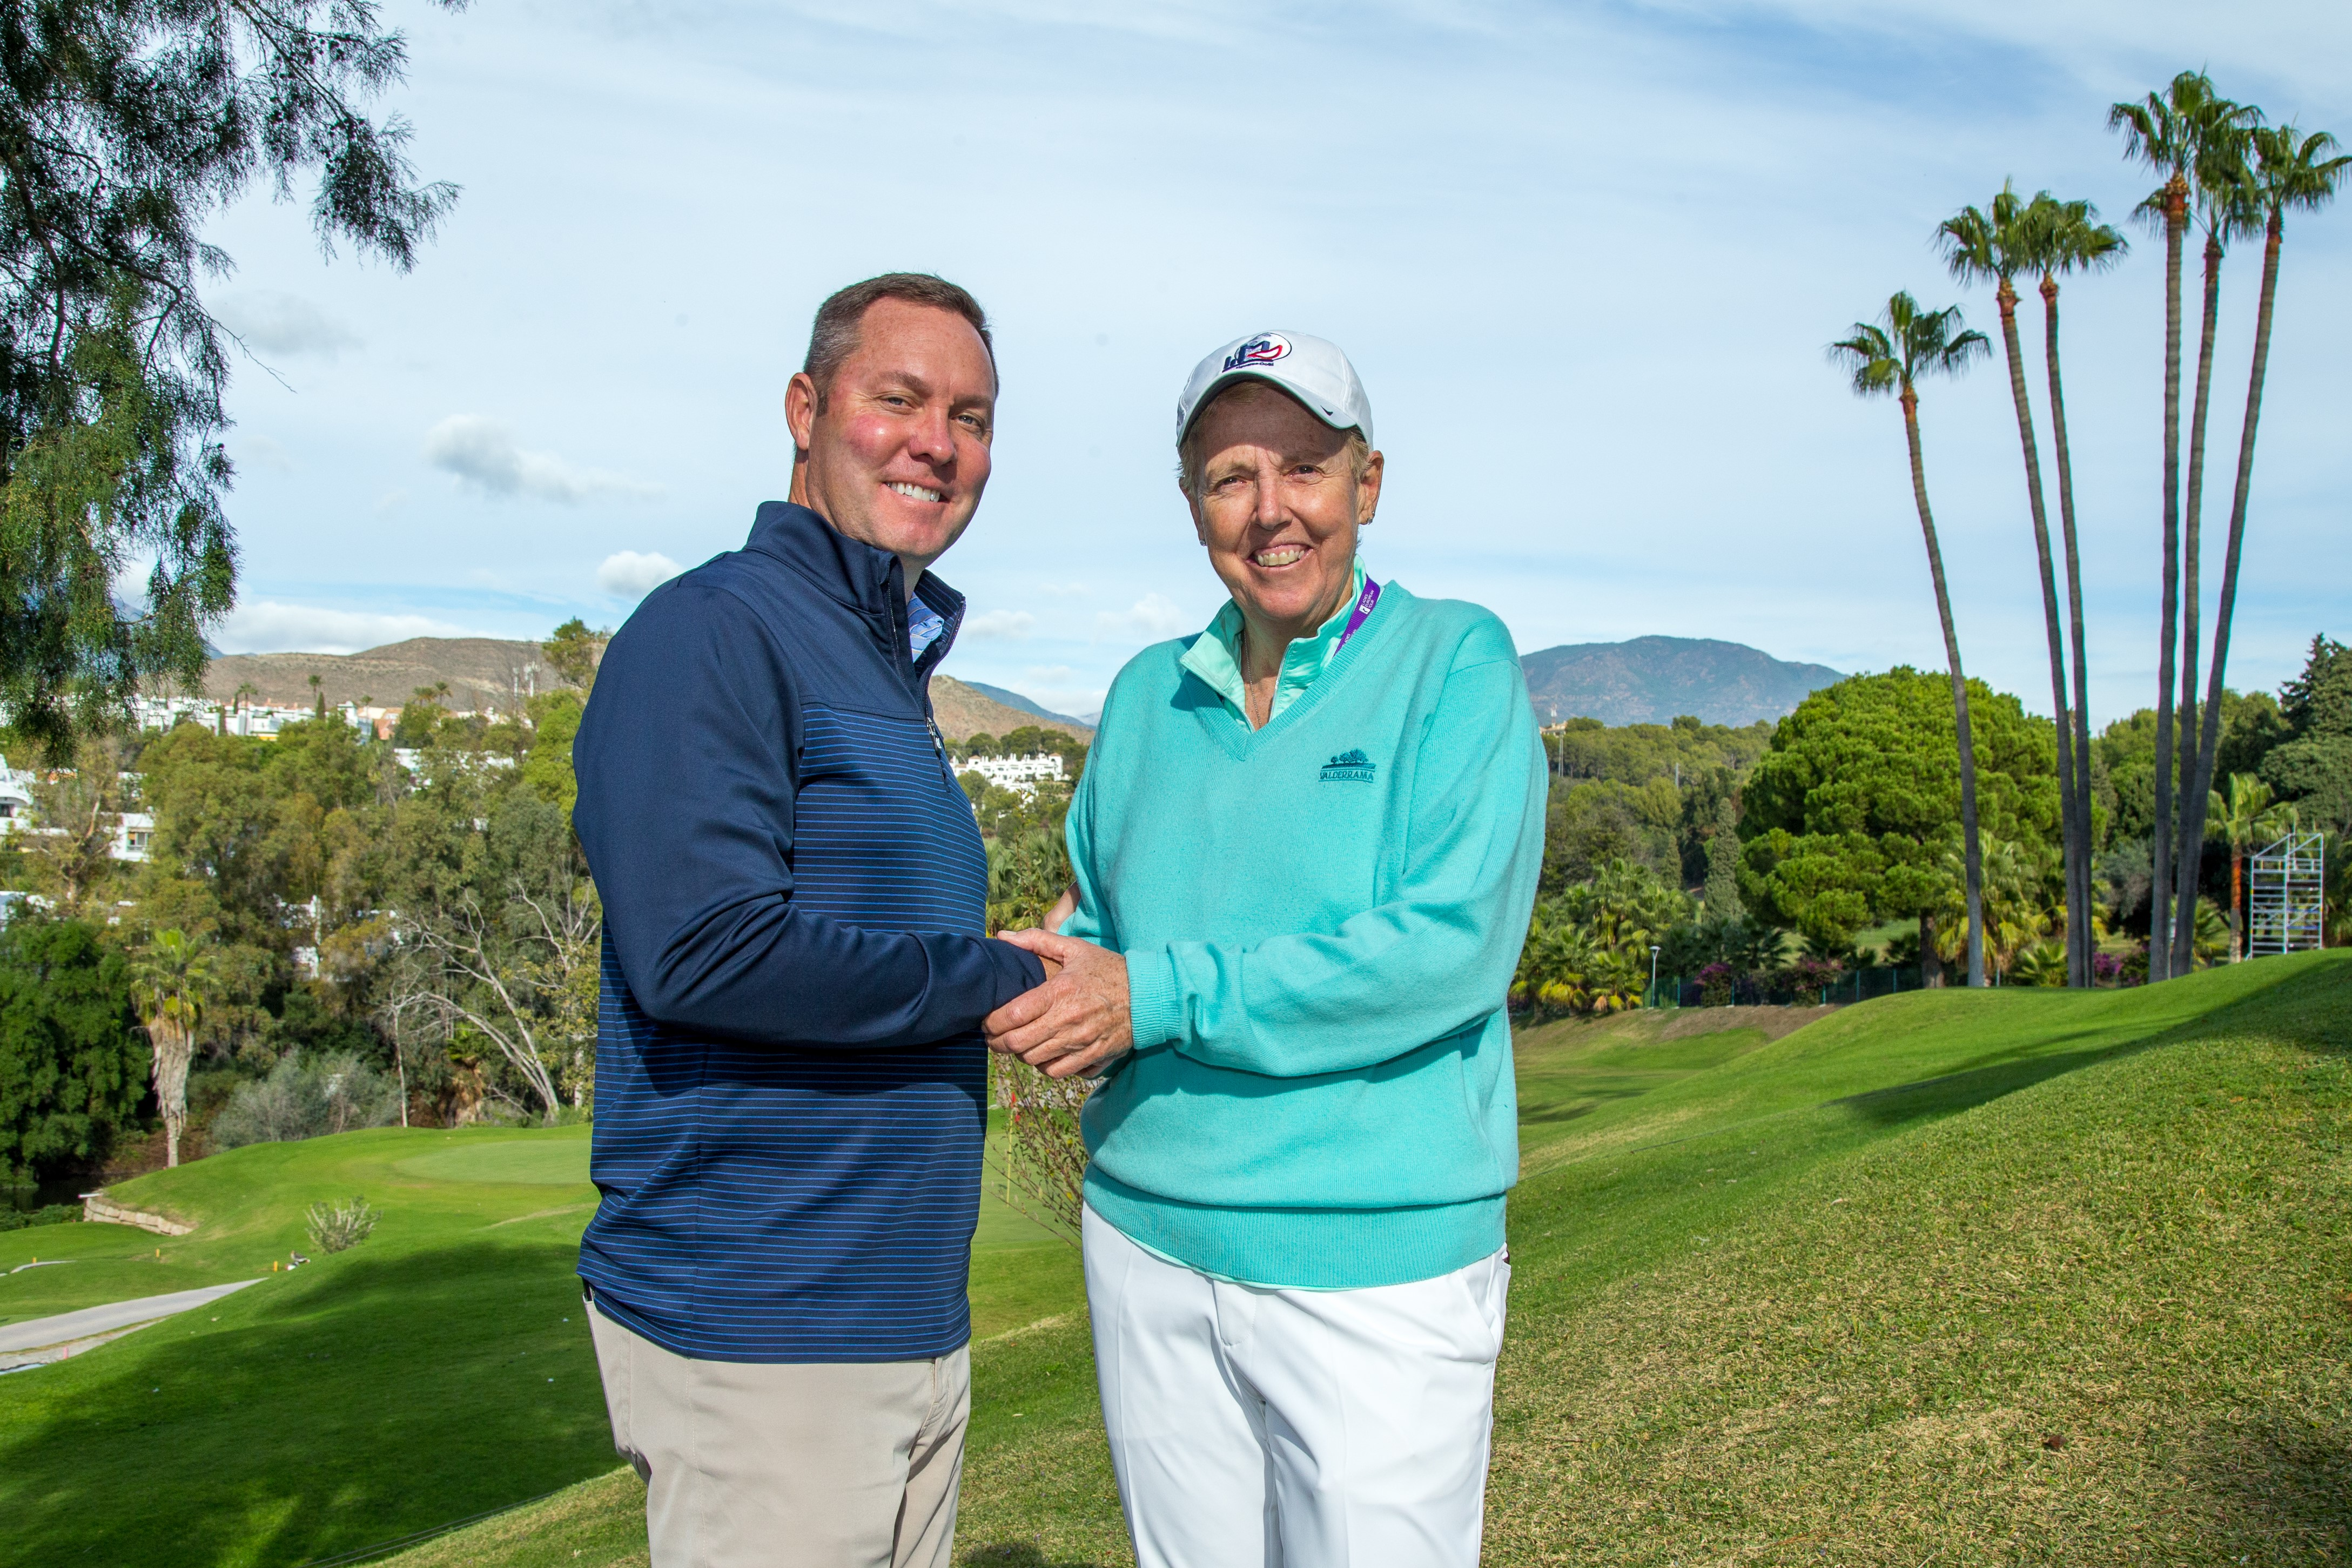 LPGA commissioner Mike Wha and LET chairwoman Marta Figueras Dotti